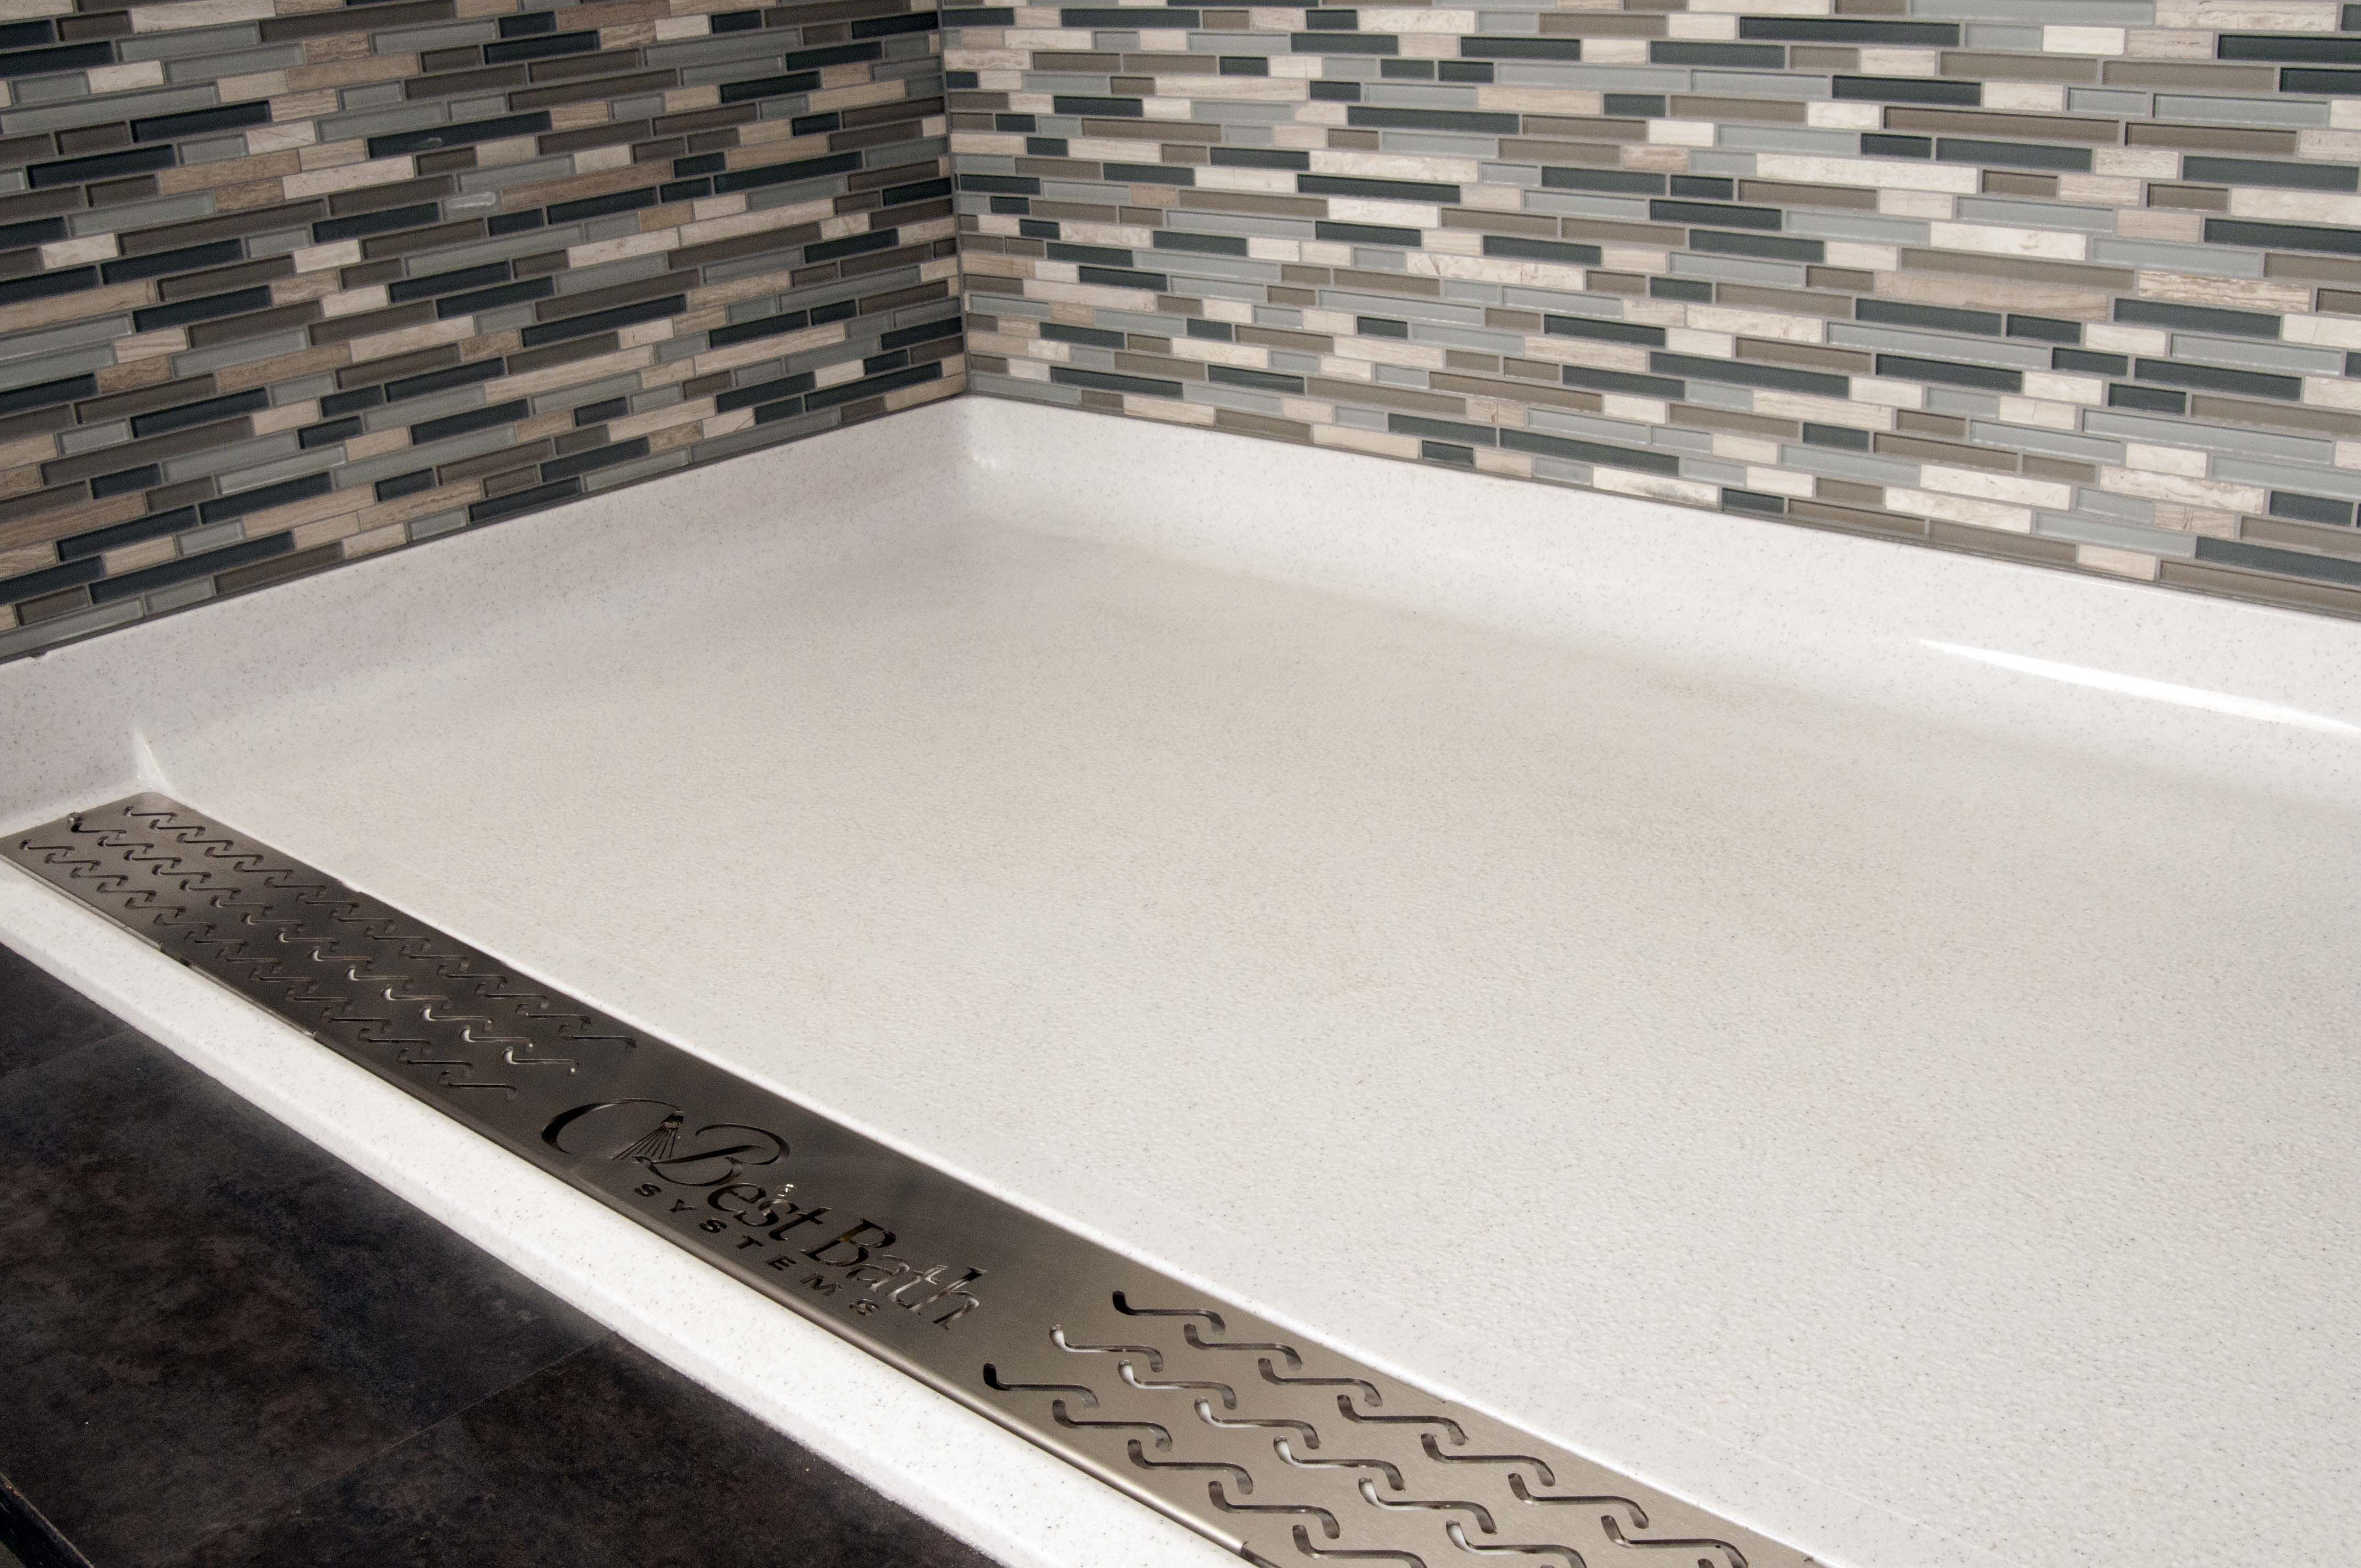 Best Bath shower pan with trench drain and tile walls ...